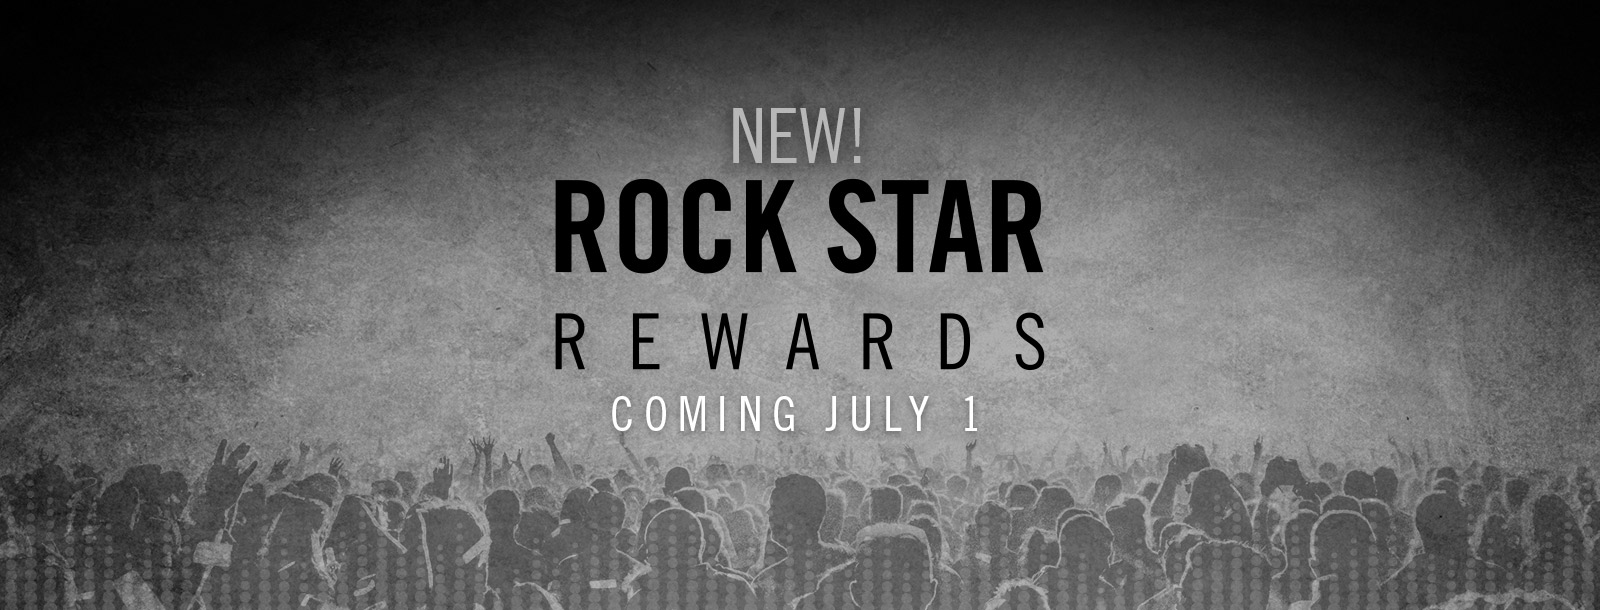 rock star rewards home slider